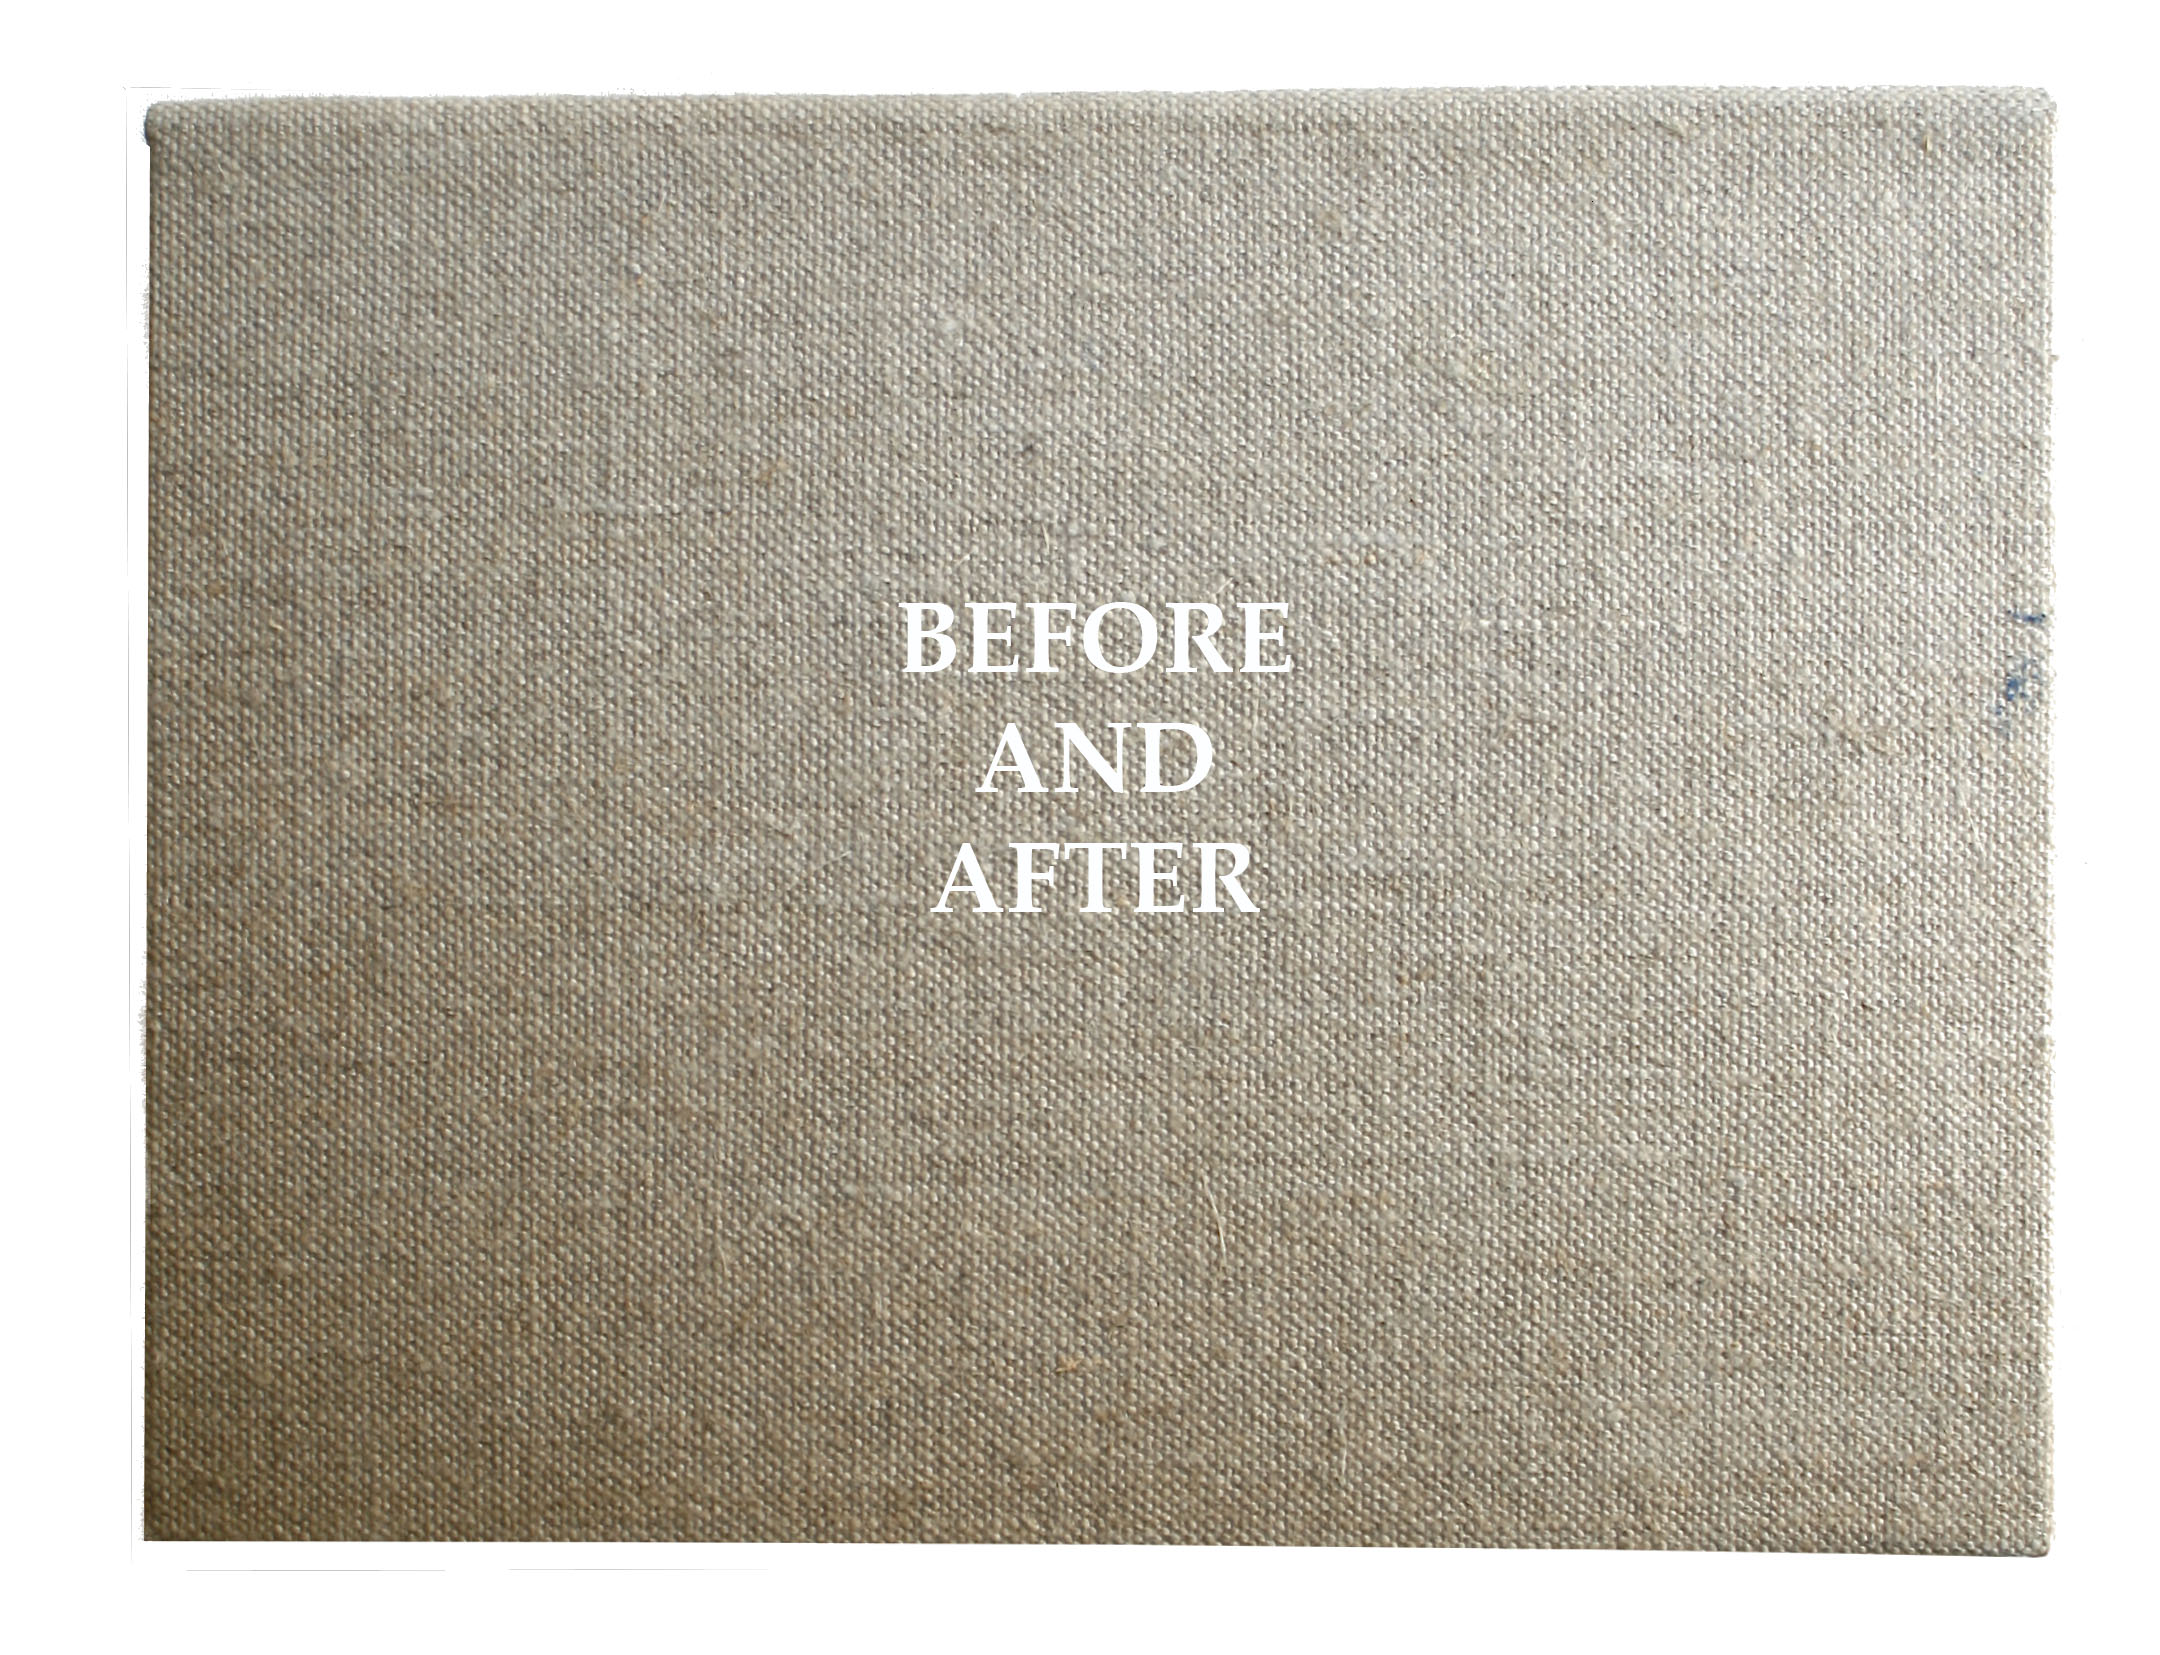 BEFORE AND AFTER by Stephen McClymont